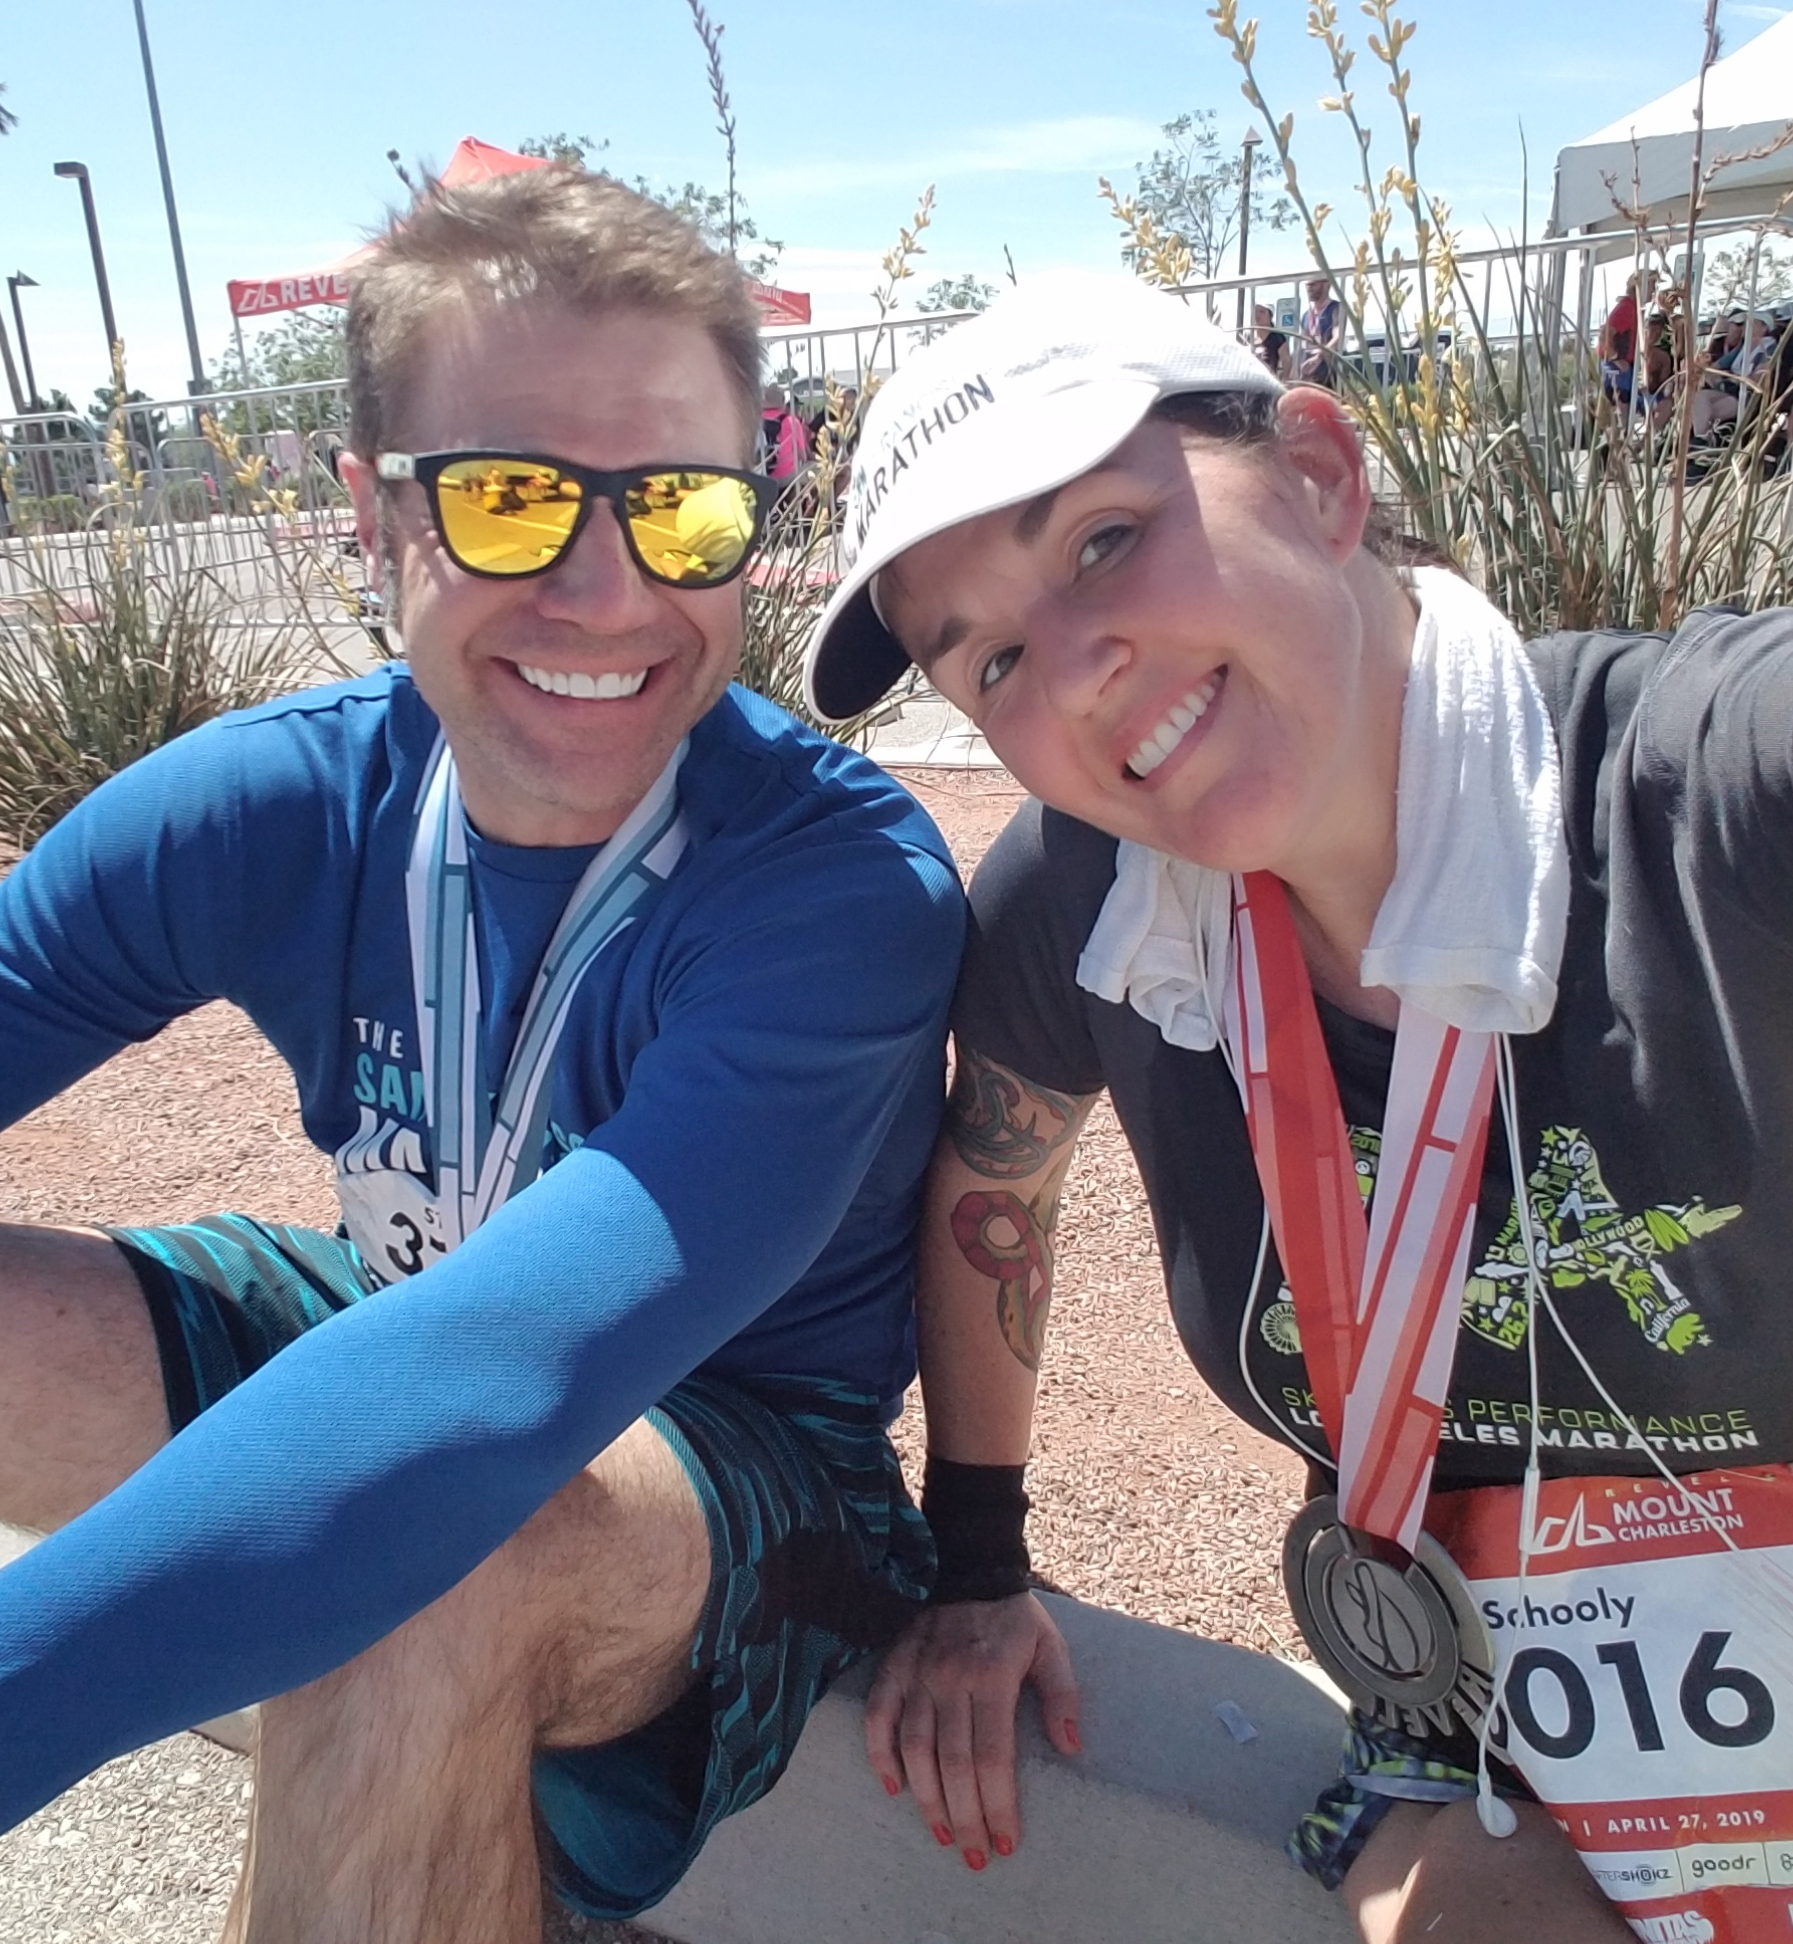 Steve did the half because he's awesome and always up for my weird adventures.